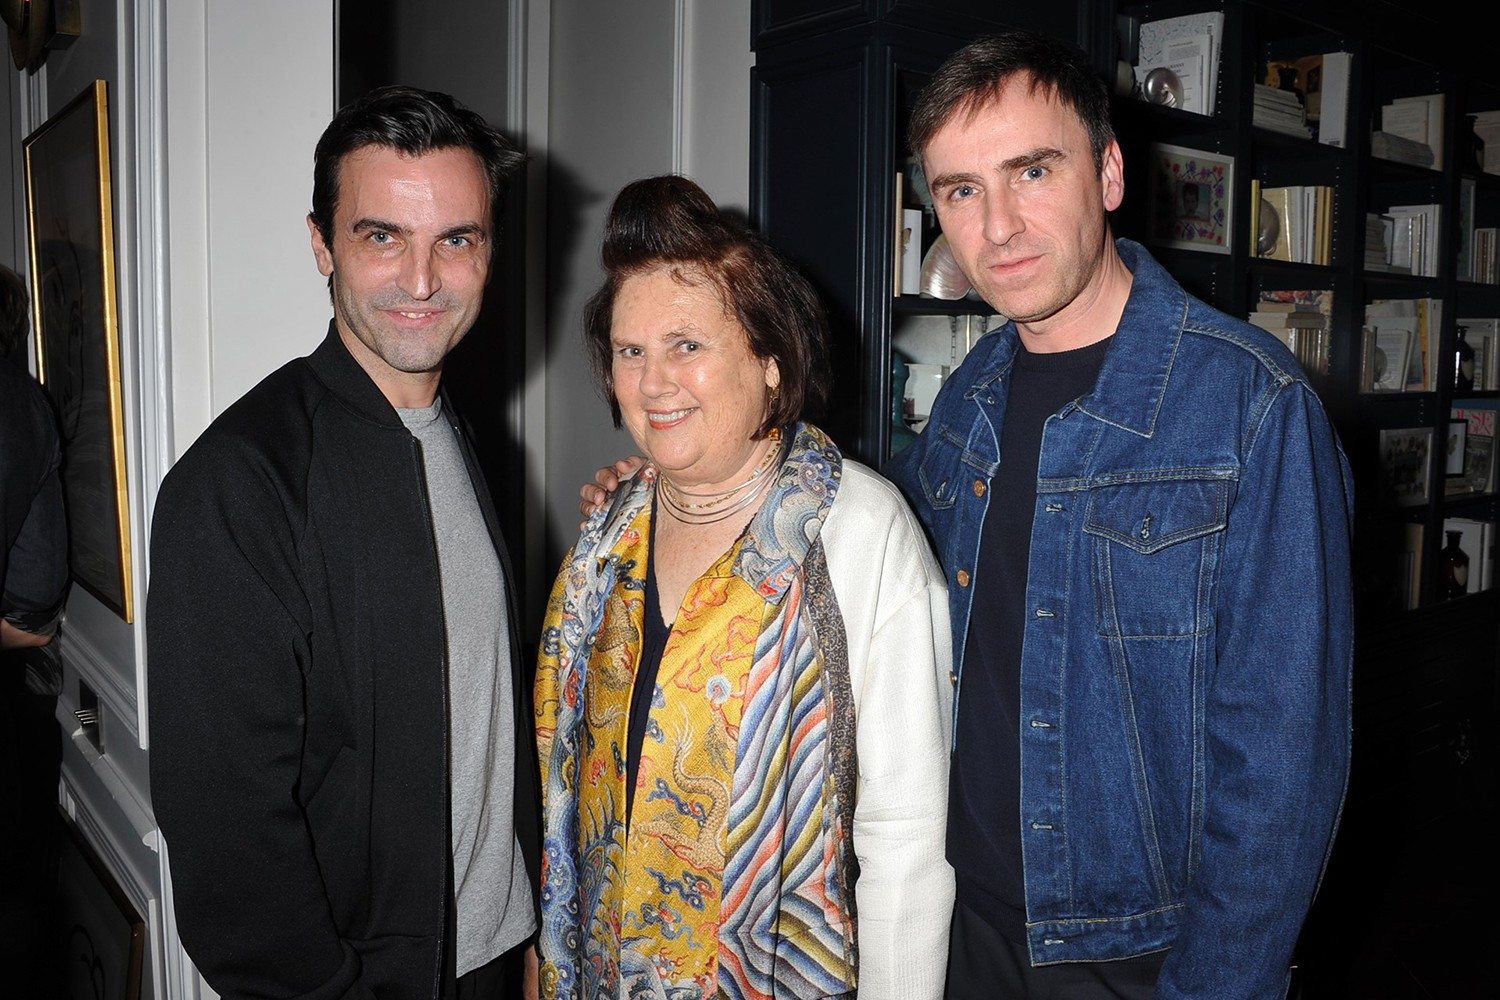 Suzy Menkes with Raf Simons (right) and Nicolas Ghesquière (Foto: Suzy Menkes Instagram)